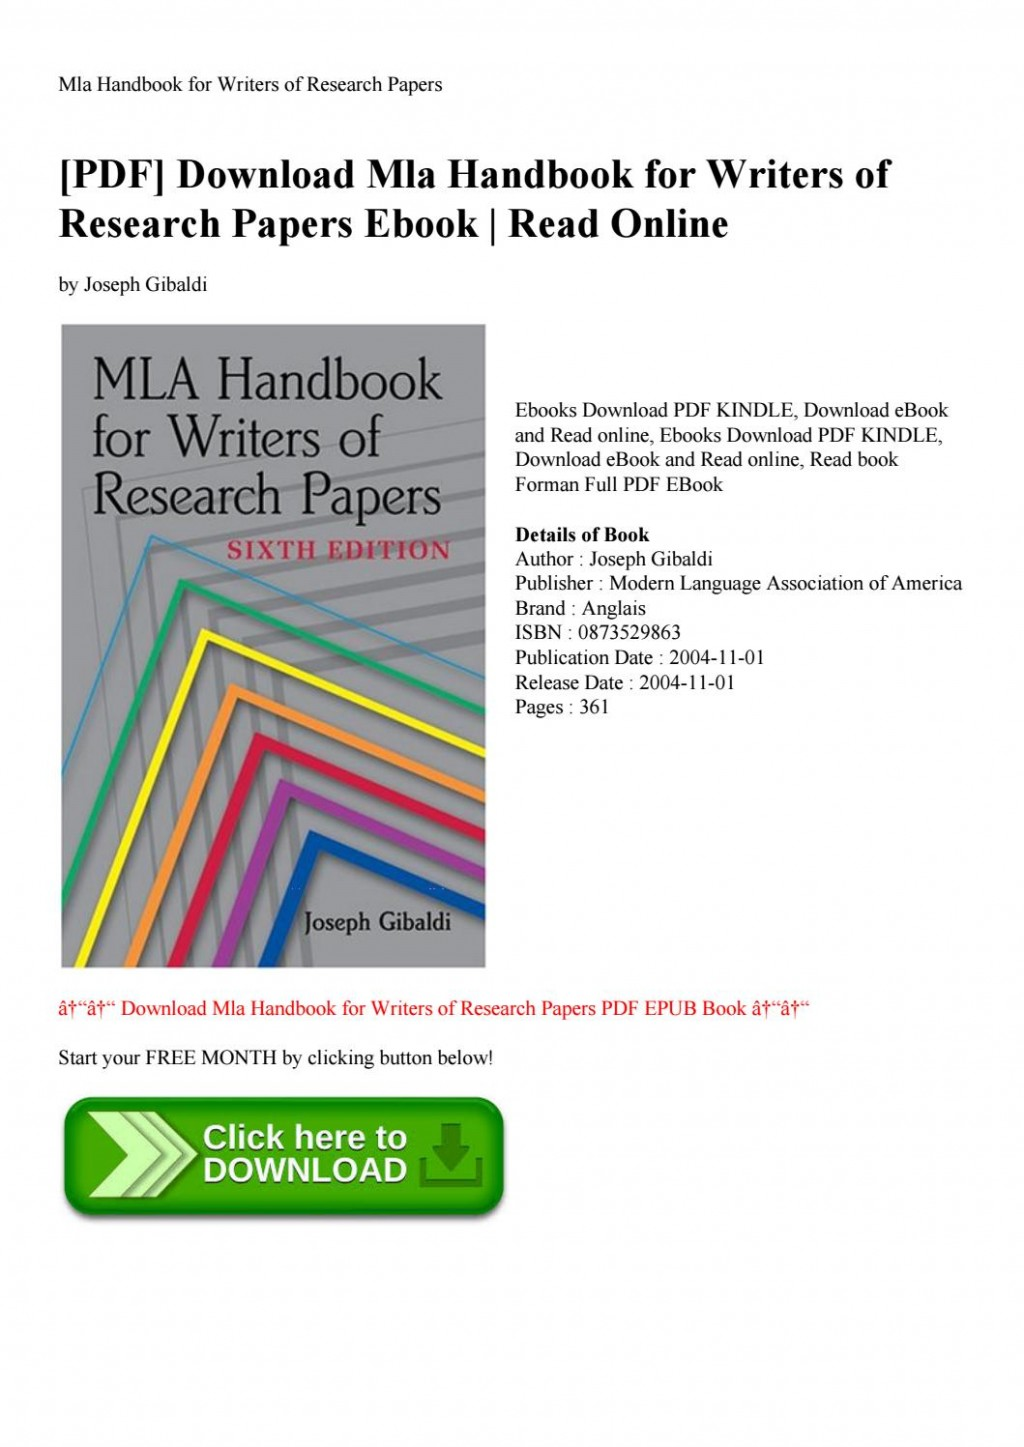 002 Research Paper Mla Handbook For Writers Of Papers Pdf Download Page 1 Top 8th Edition Free Large